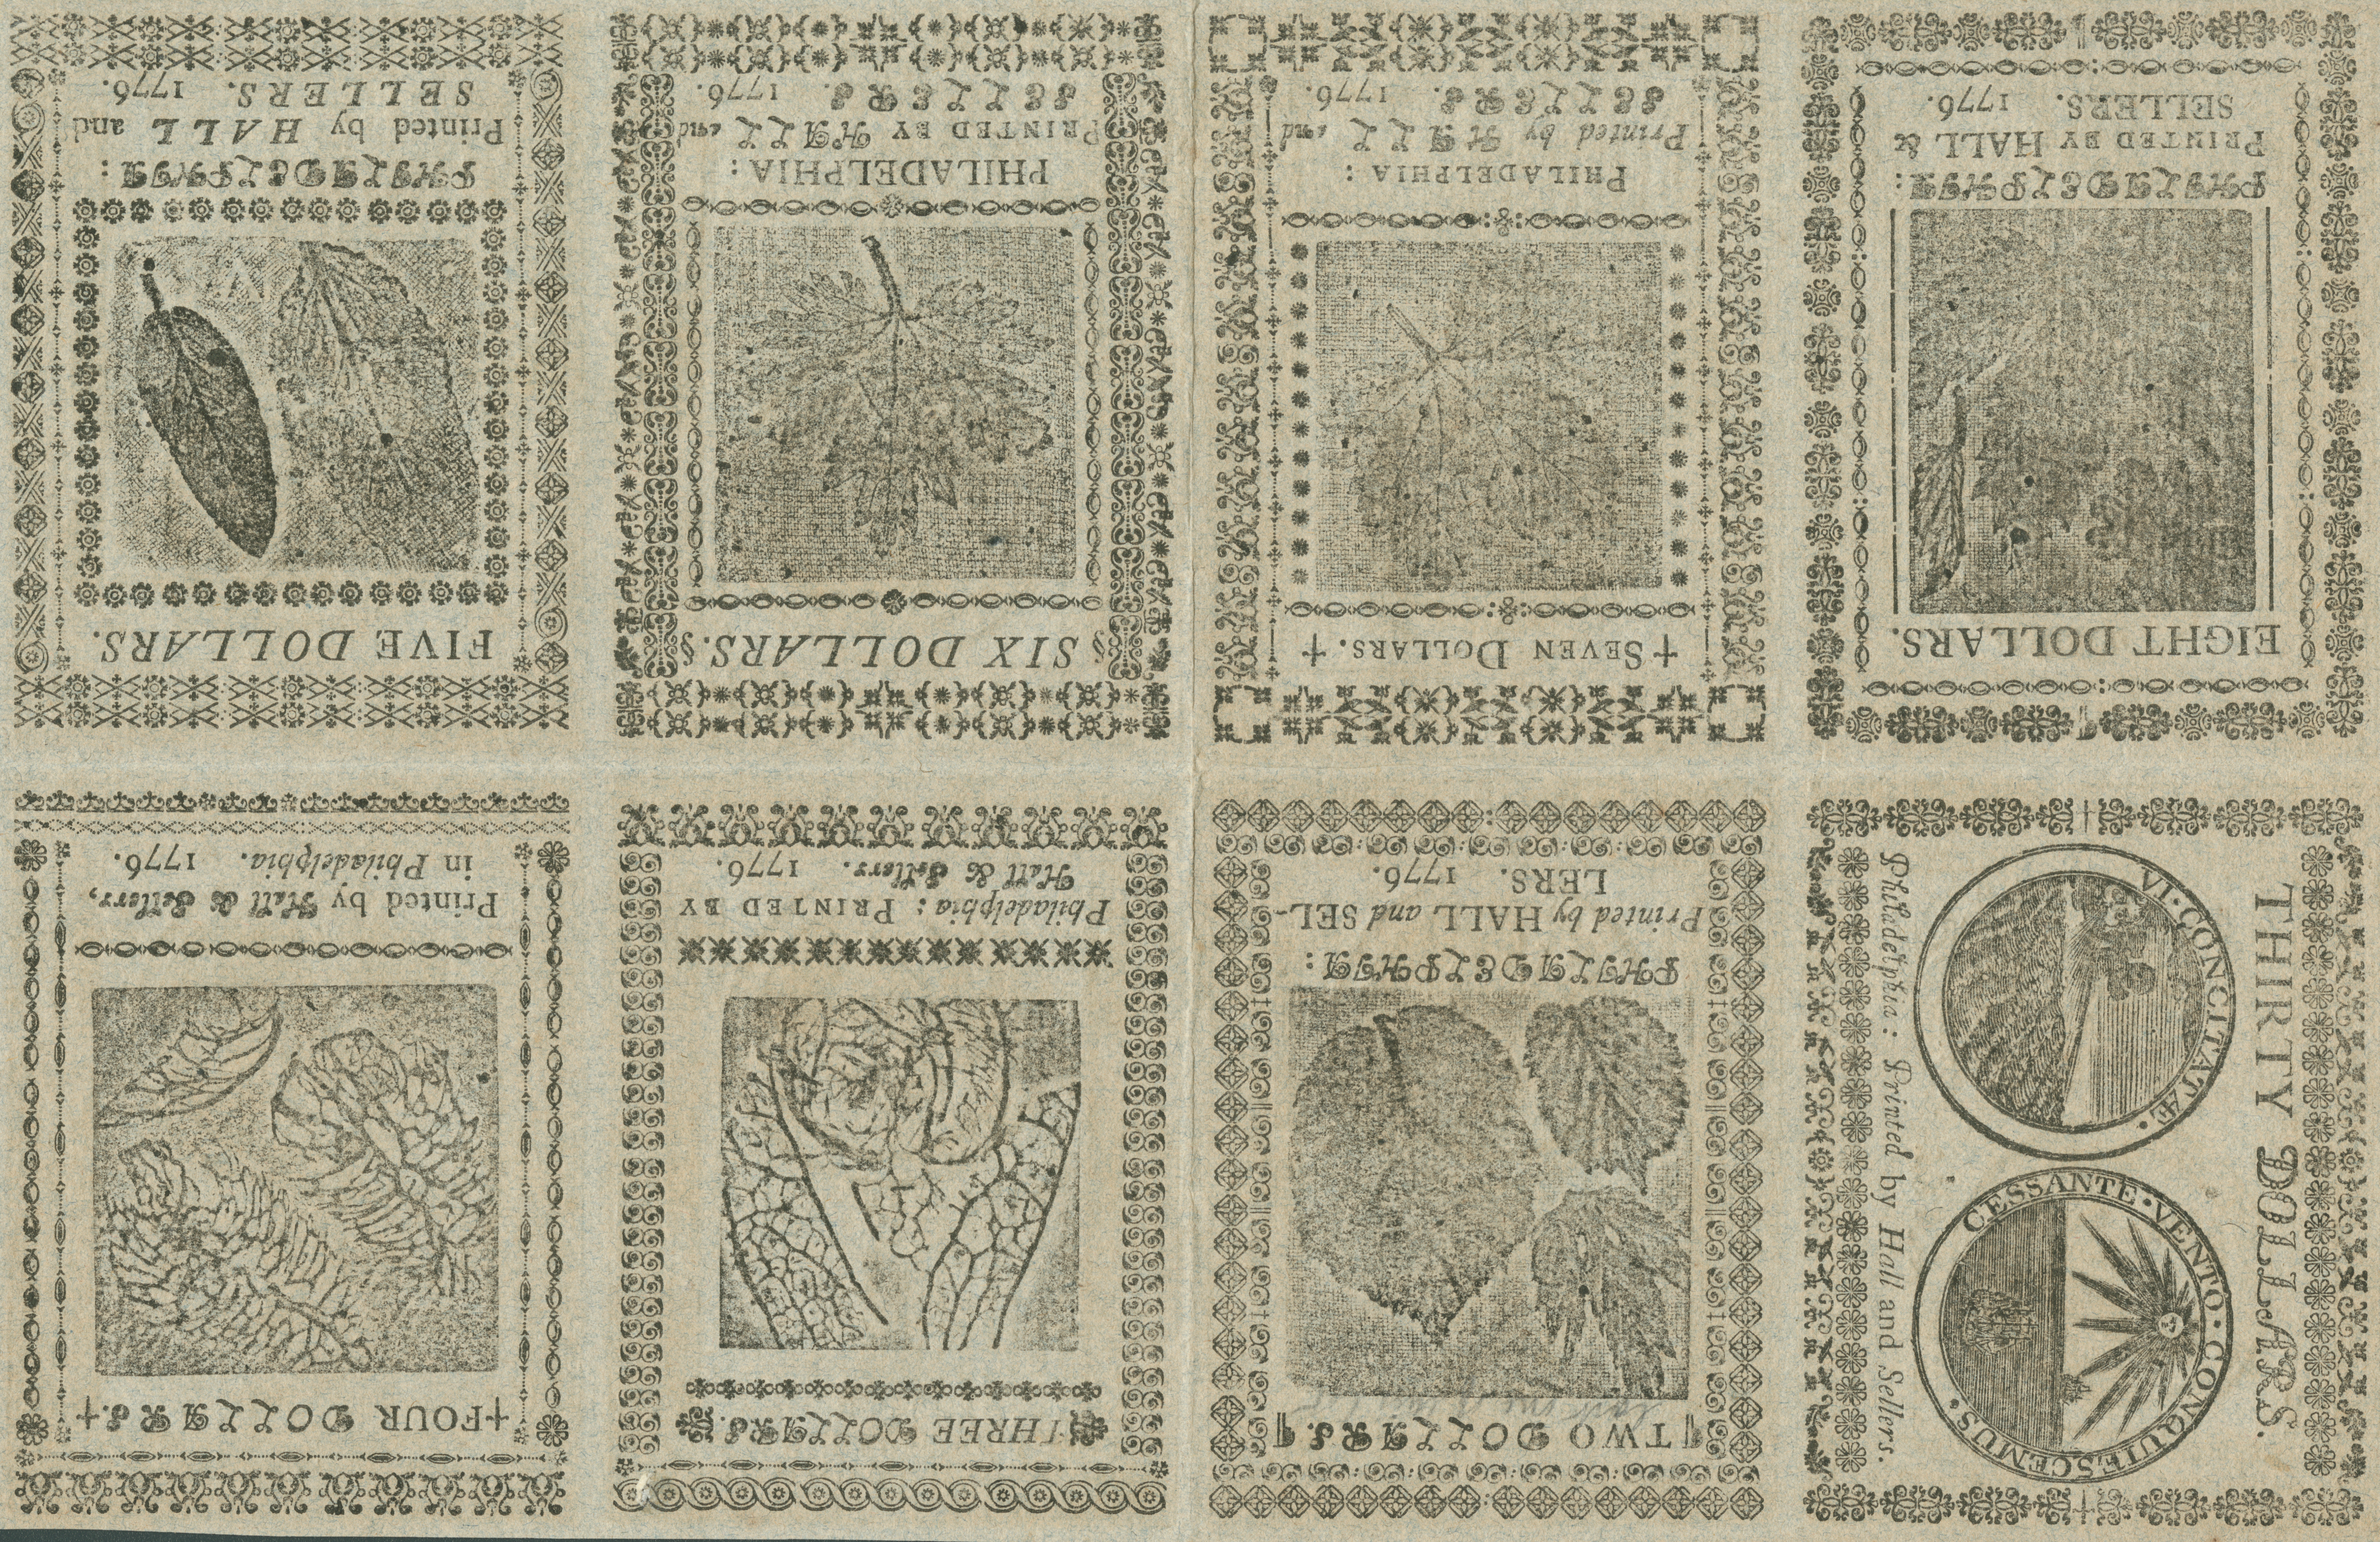 Undivided sheet of Continental Currency, printed on blue paper for use as a counterfeit detector (Philadelphia: Printed by Hall and Sellers, 1776) Franklin's leaf cuts were used on money right up through the Revolution.